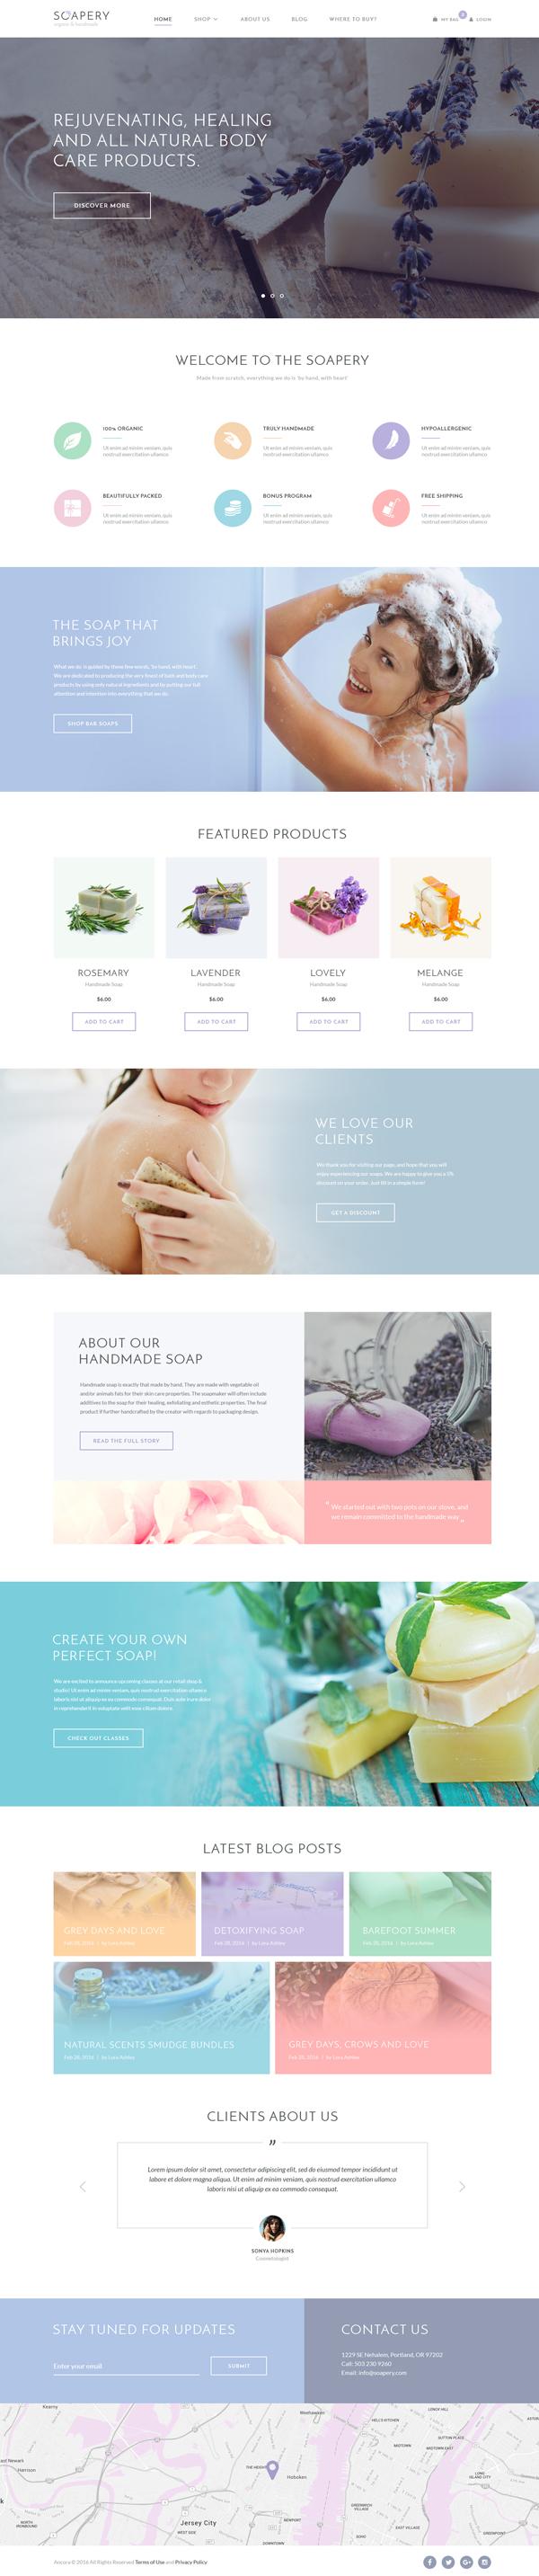 Soapery – Handmade Soap & Handcrafted Products Shop WP Theme